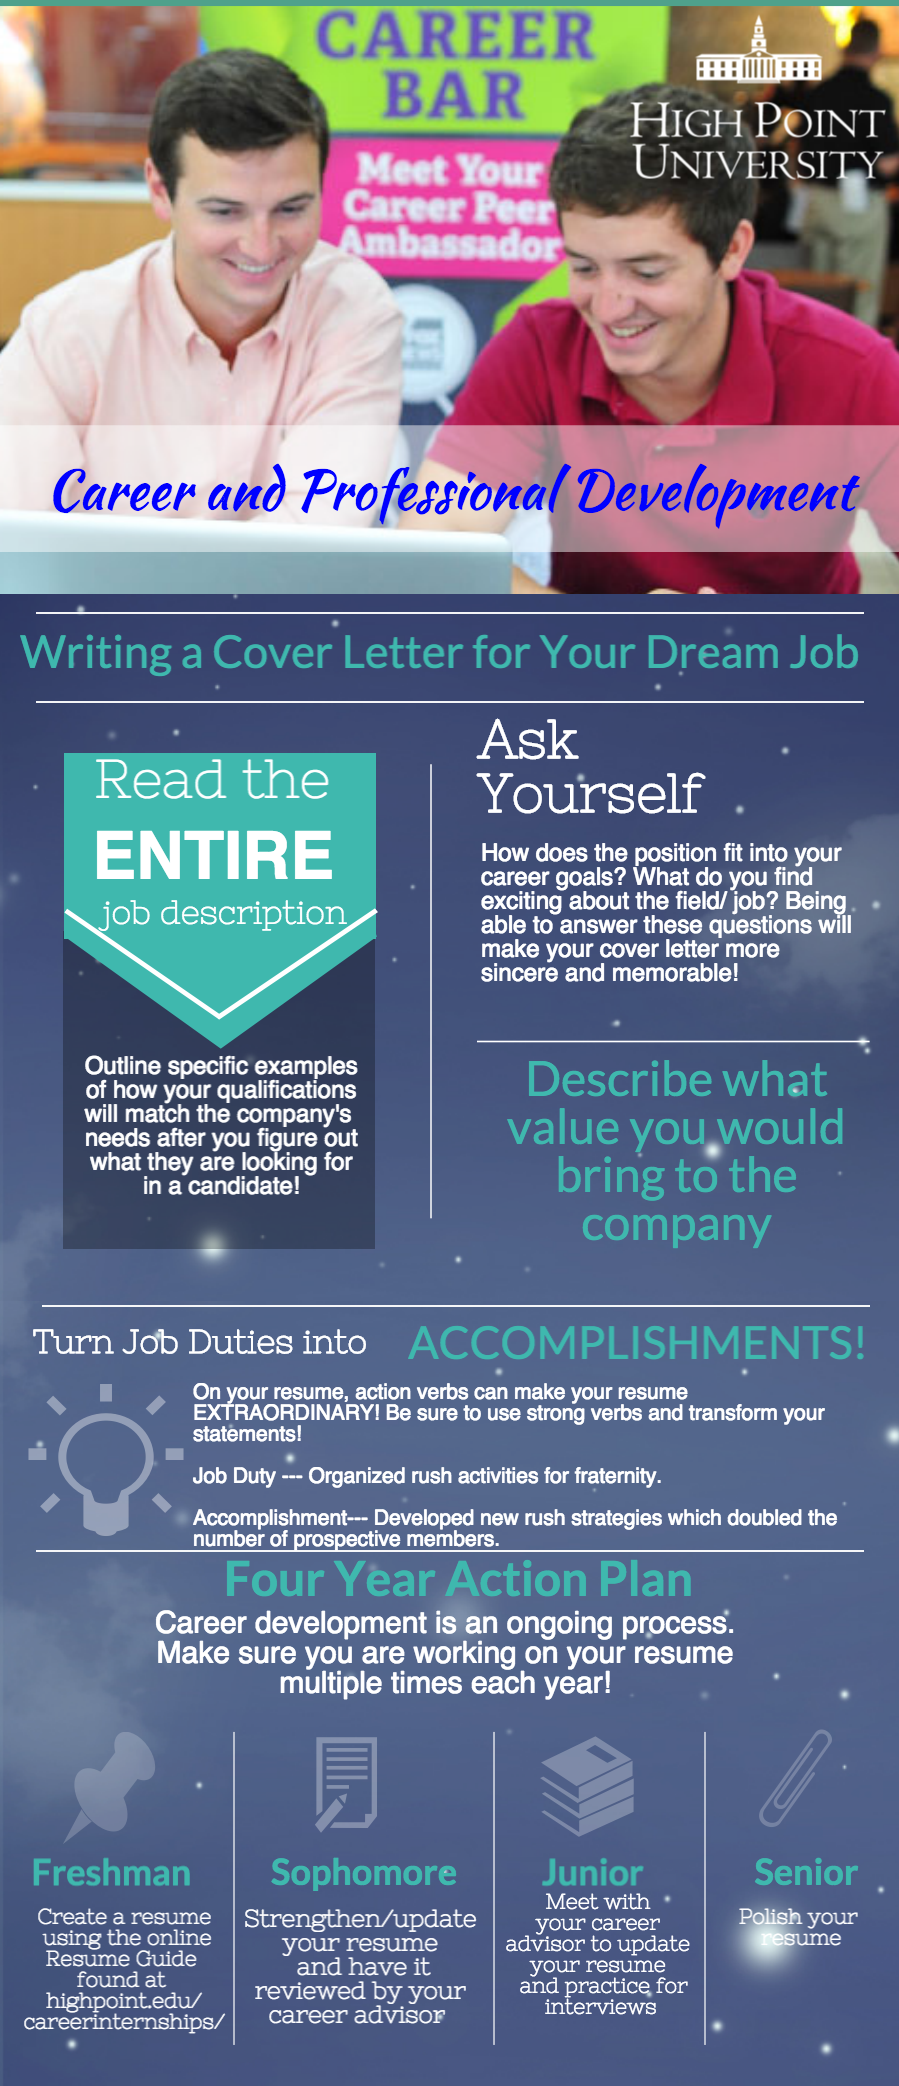 Resume and Cover Letter Sept. 24 (1)